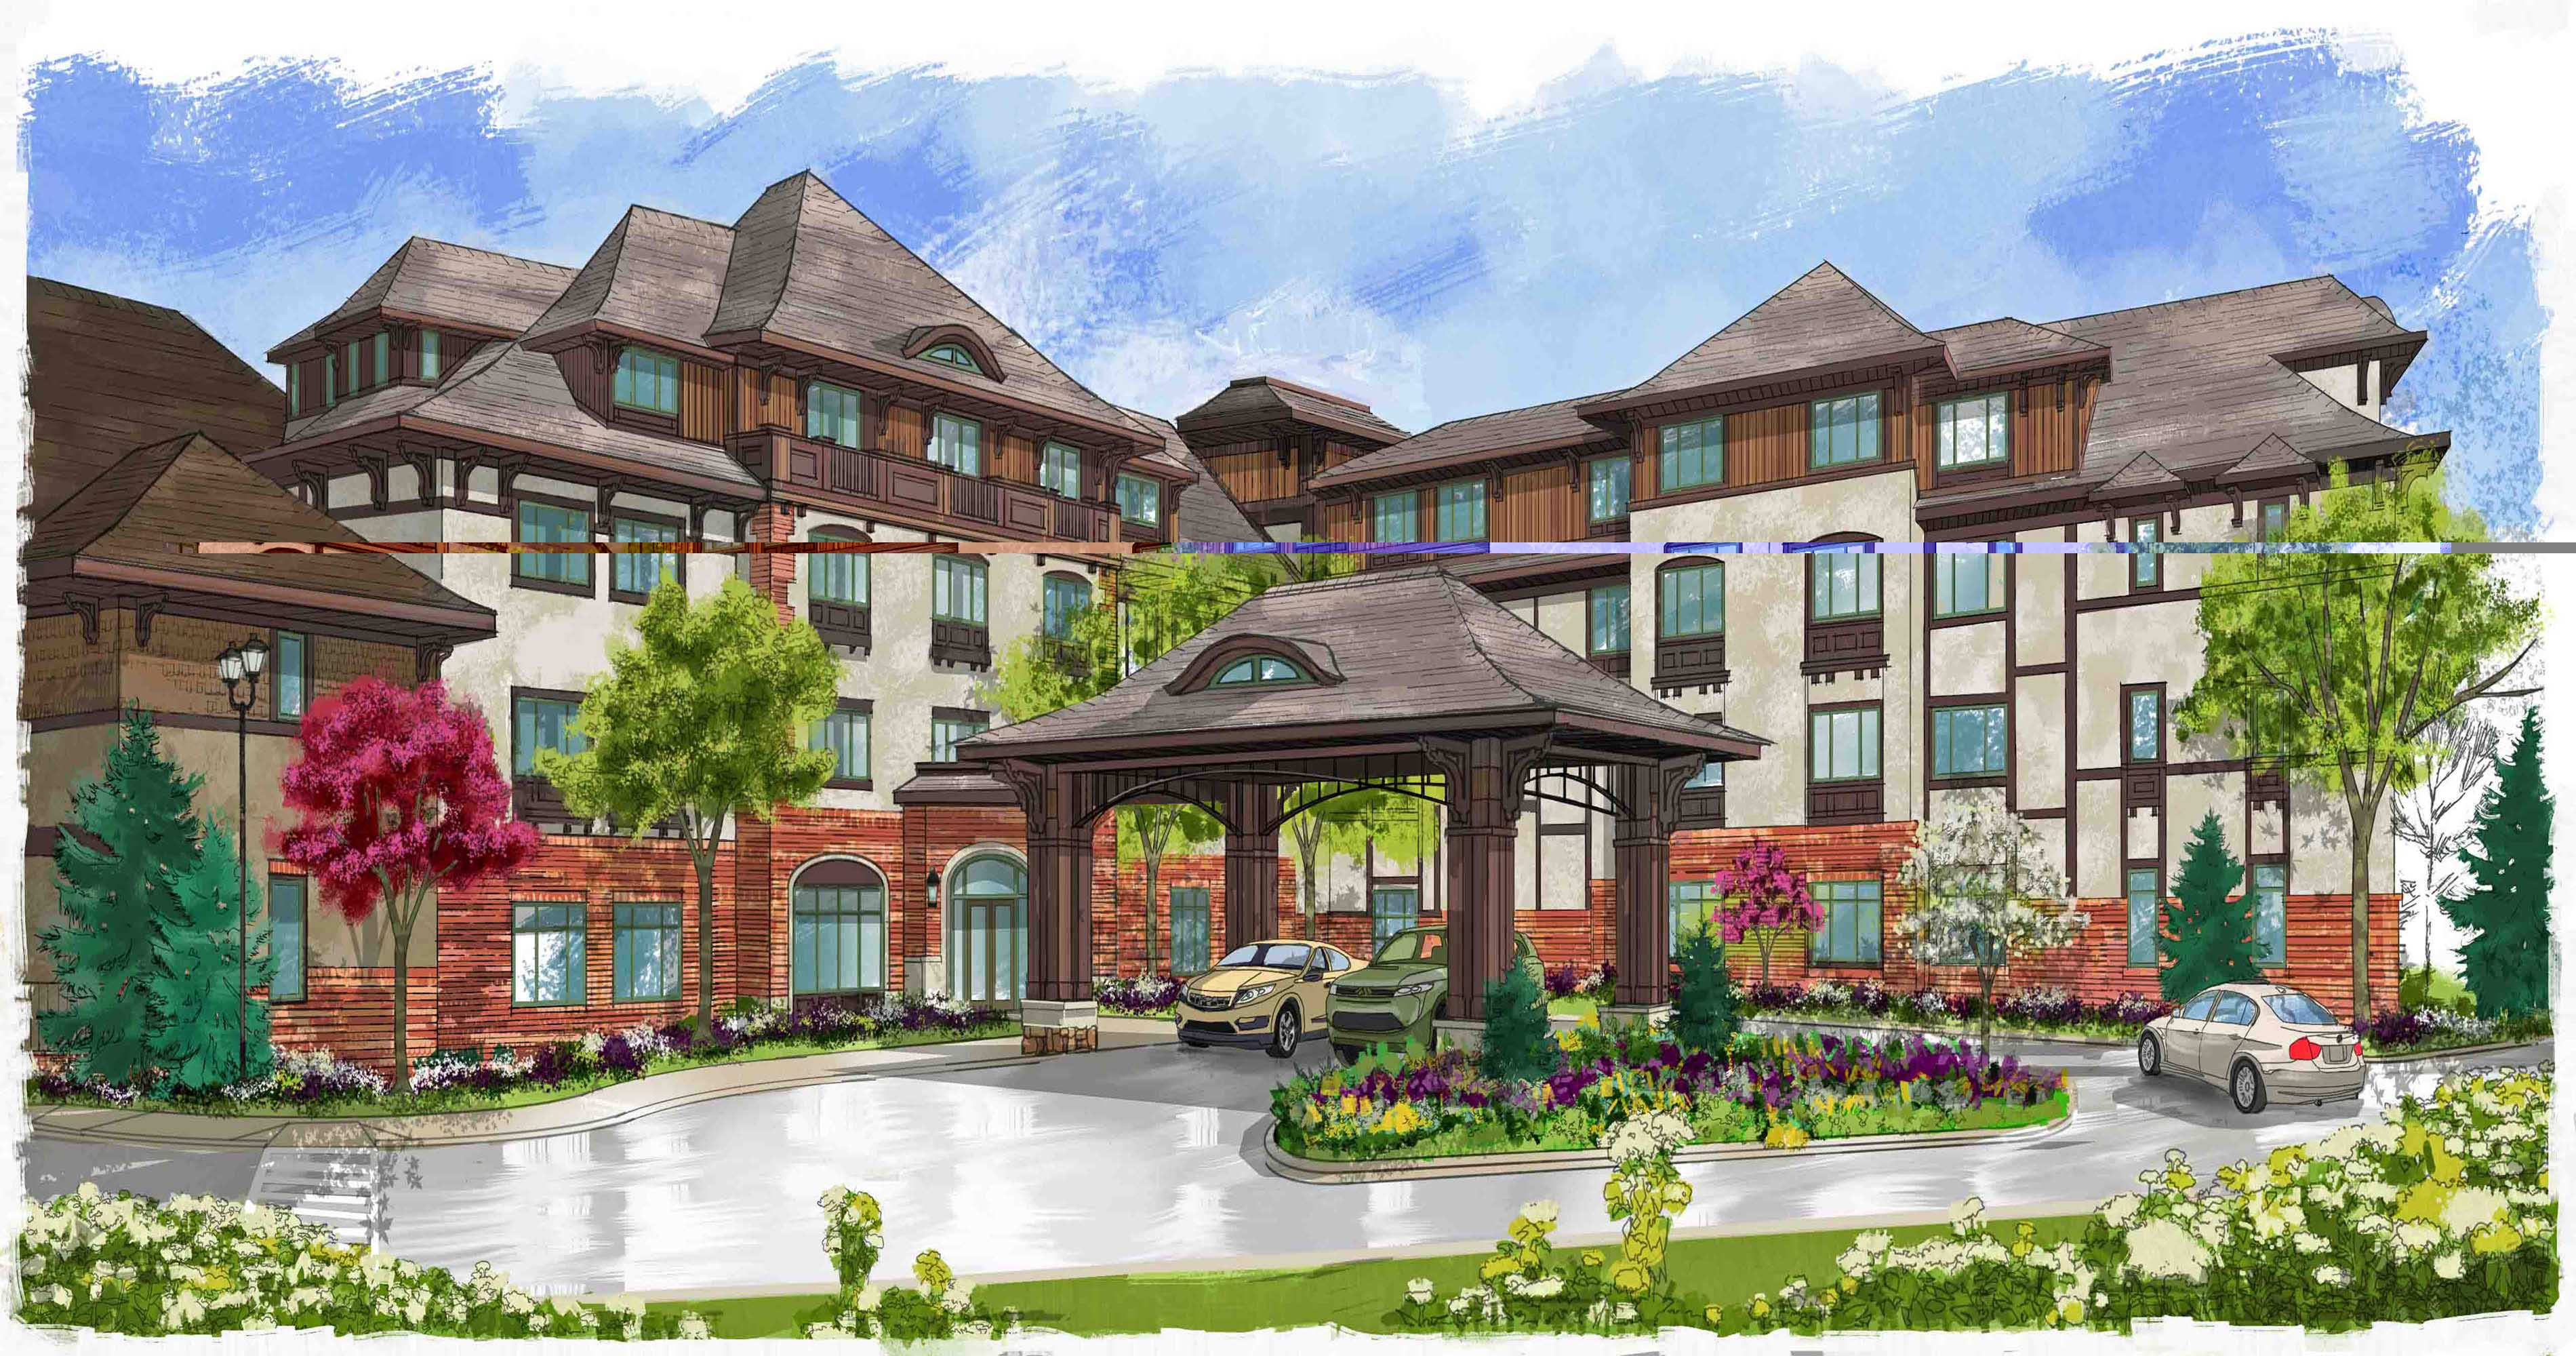 Village Hotel on Biltmore Estate will begin accepting reservations on March 2